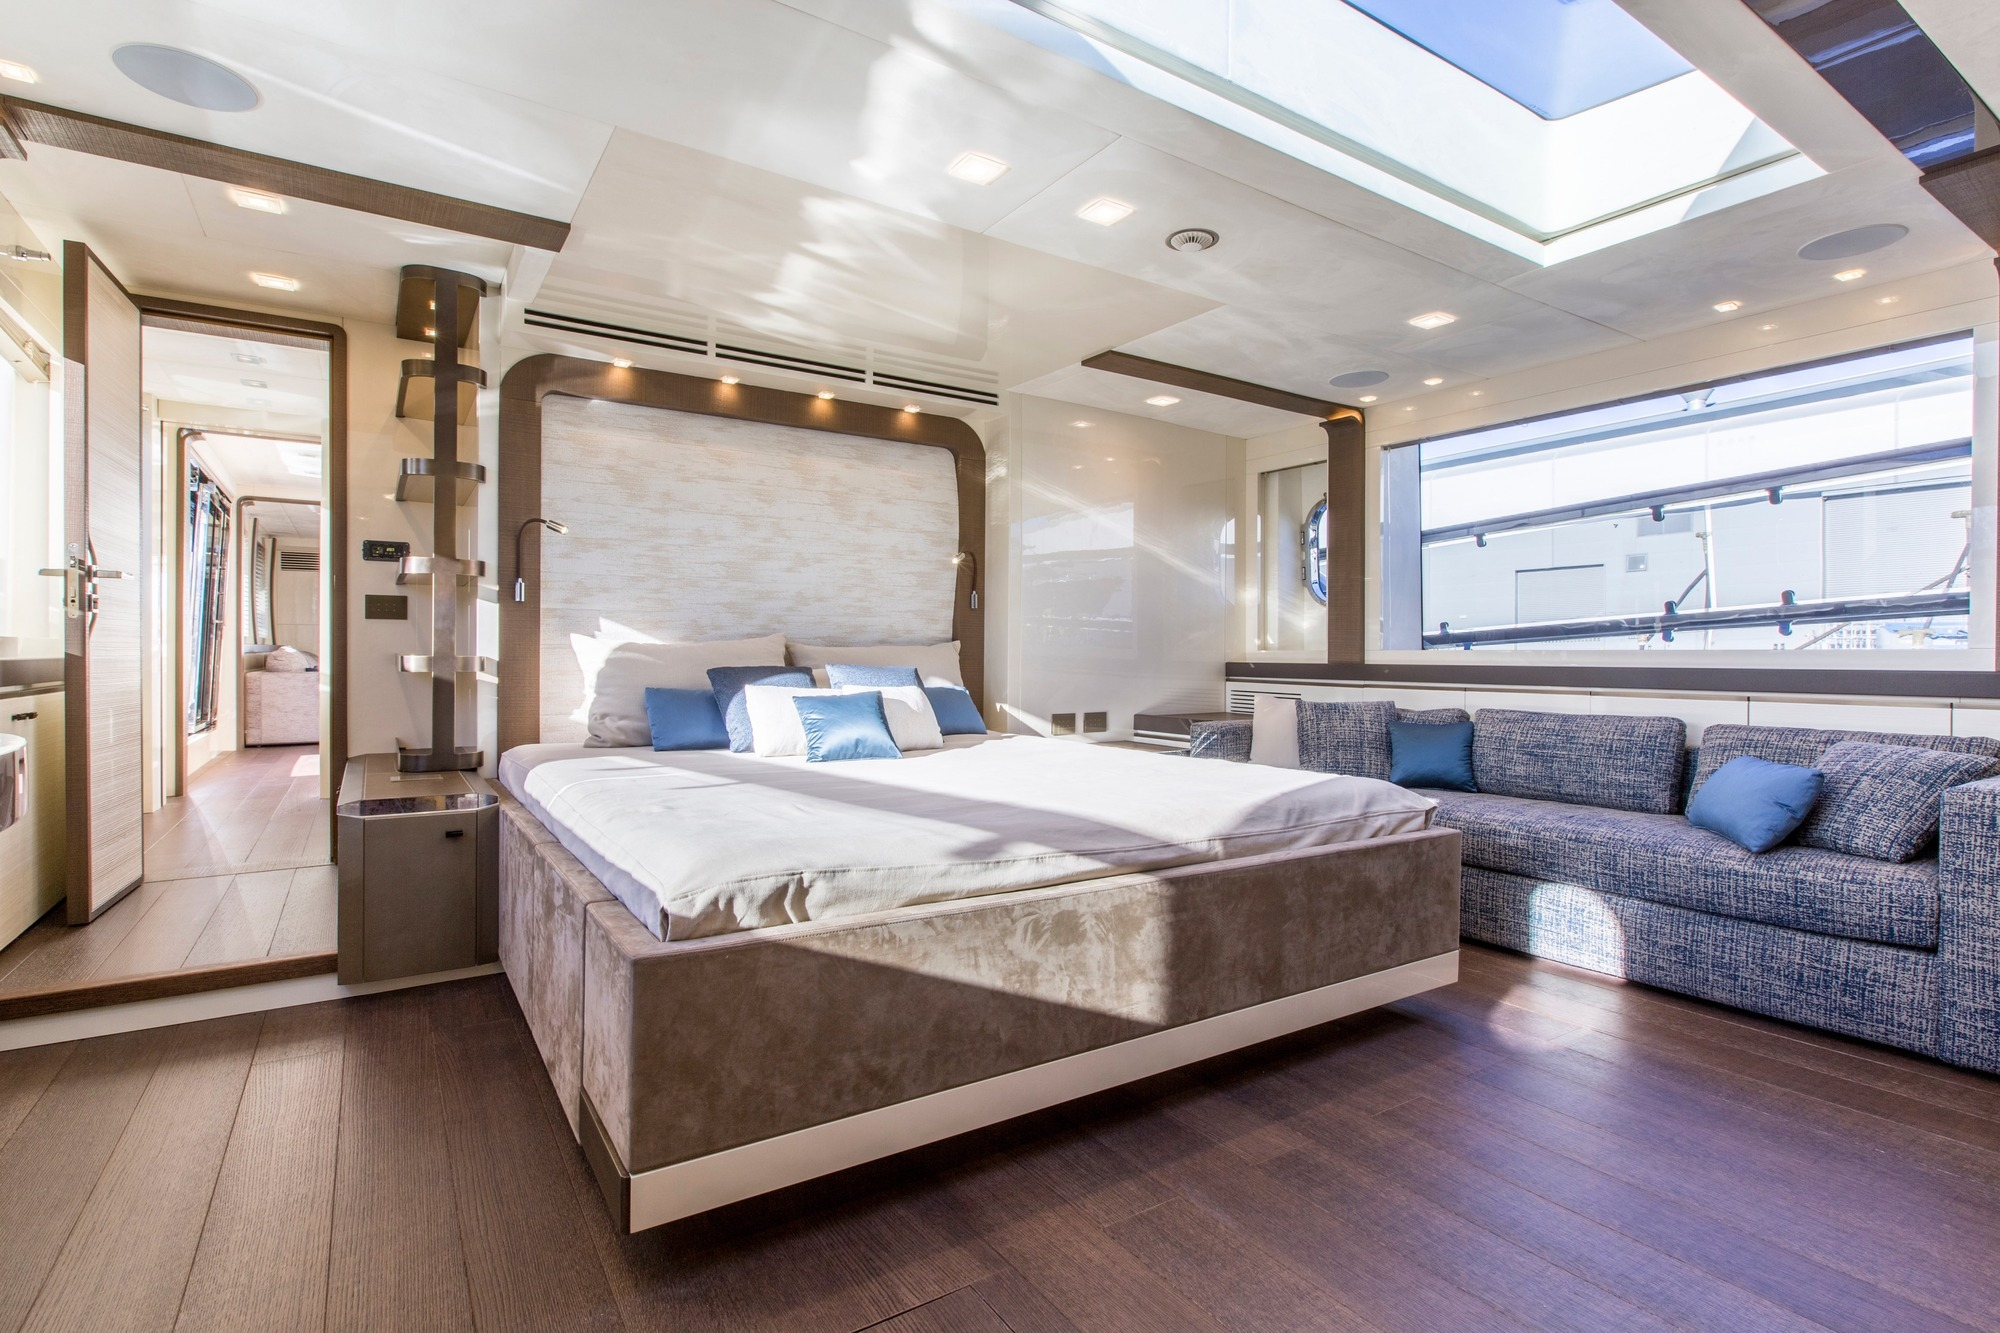 Master stateroom on the main deck